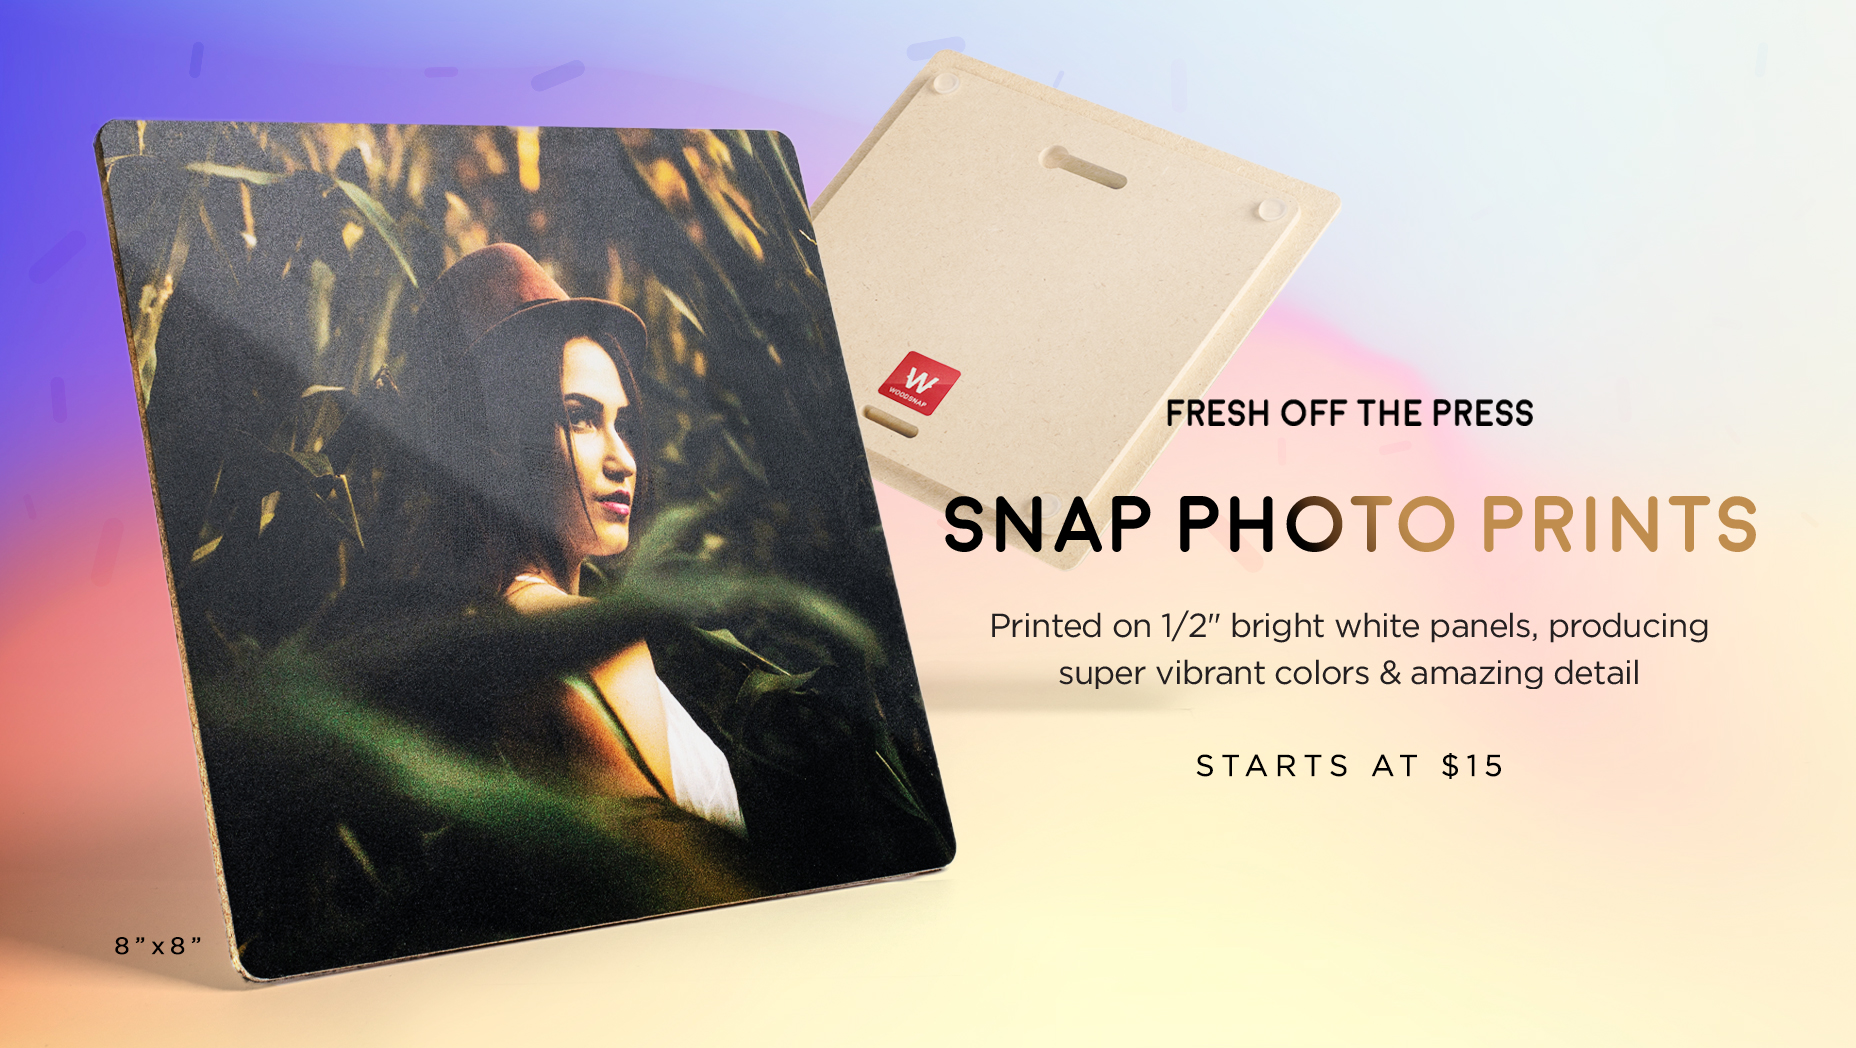 WoodSnap Snap Photo Prints